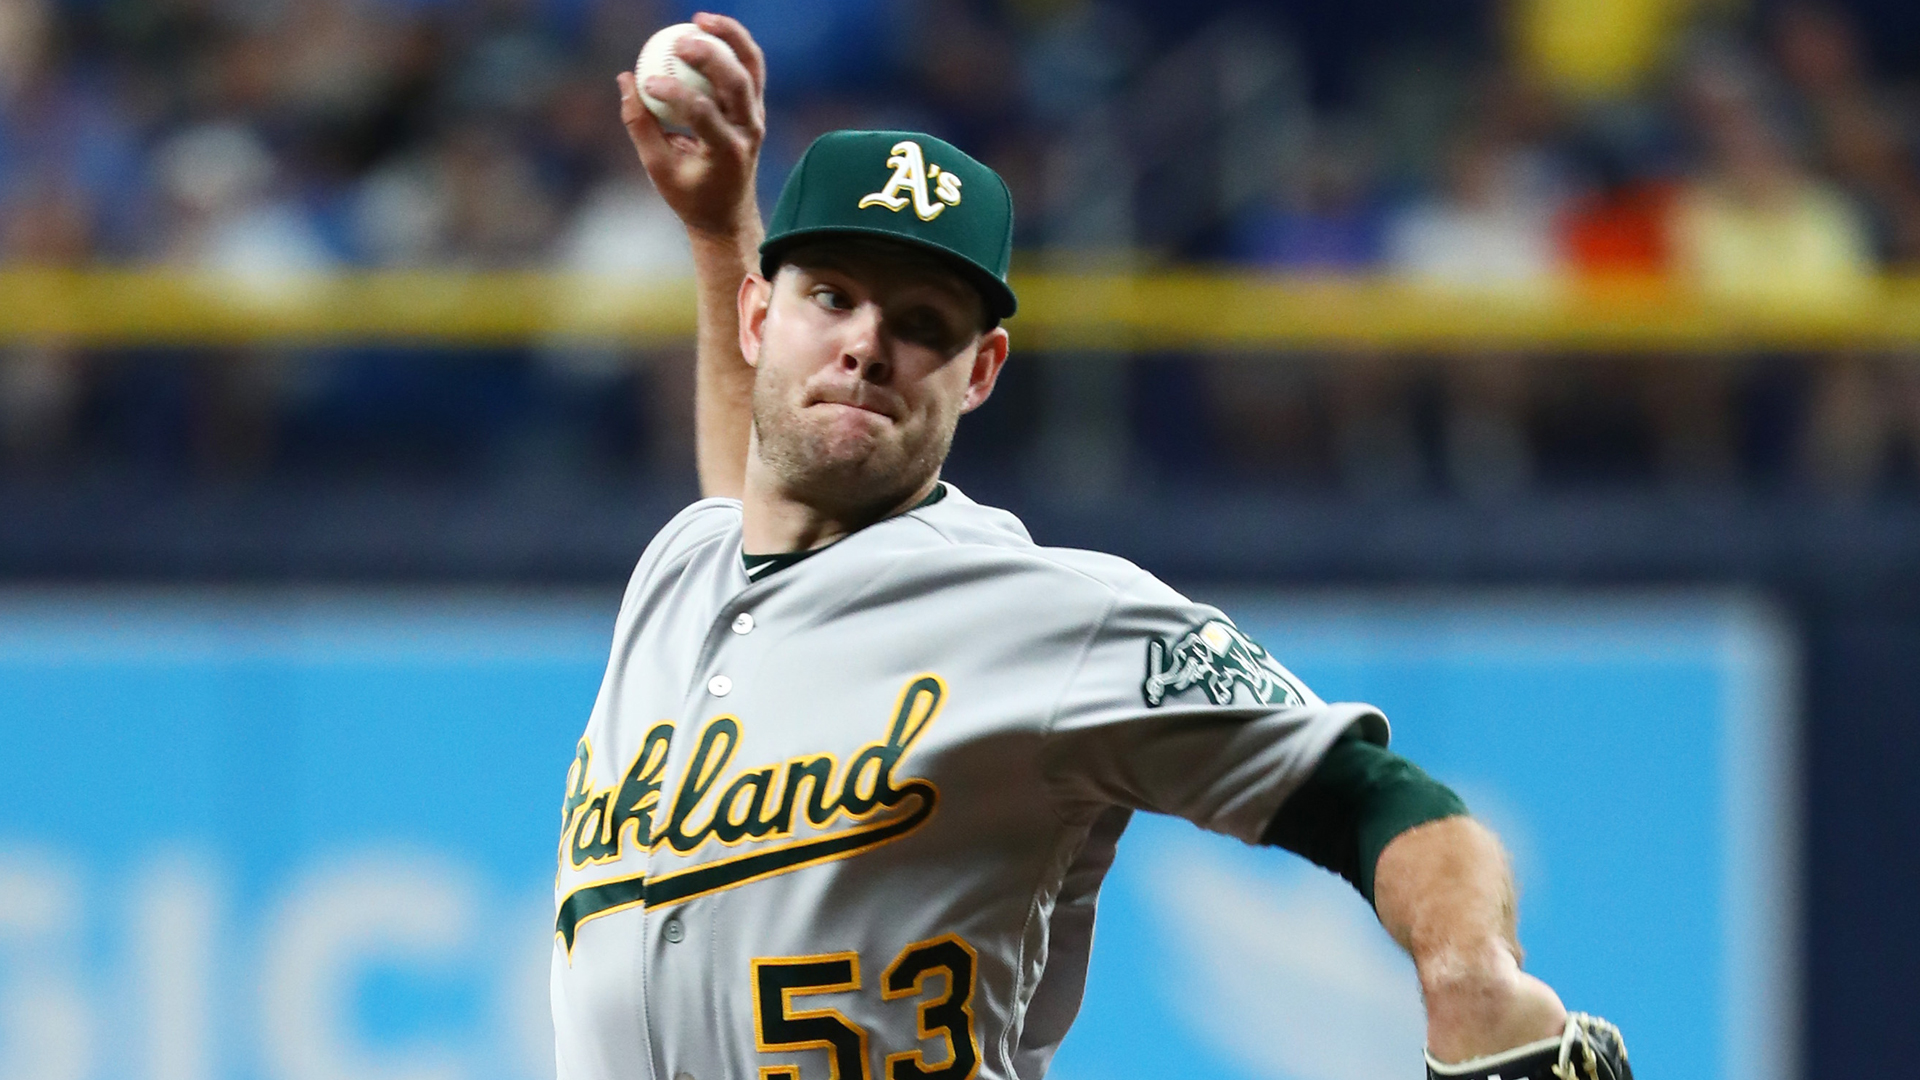 Tanner Anderson makes one mistake as he loses A's debut to Rays